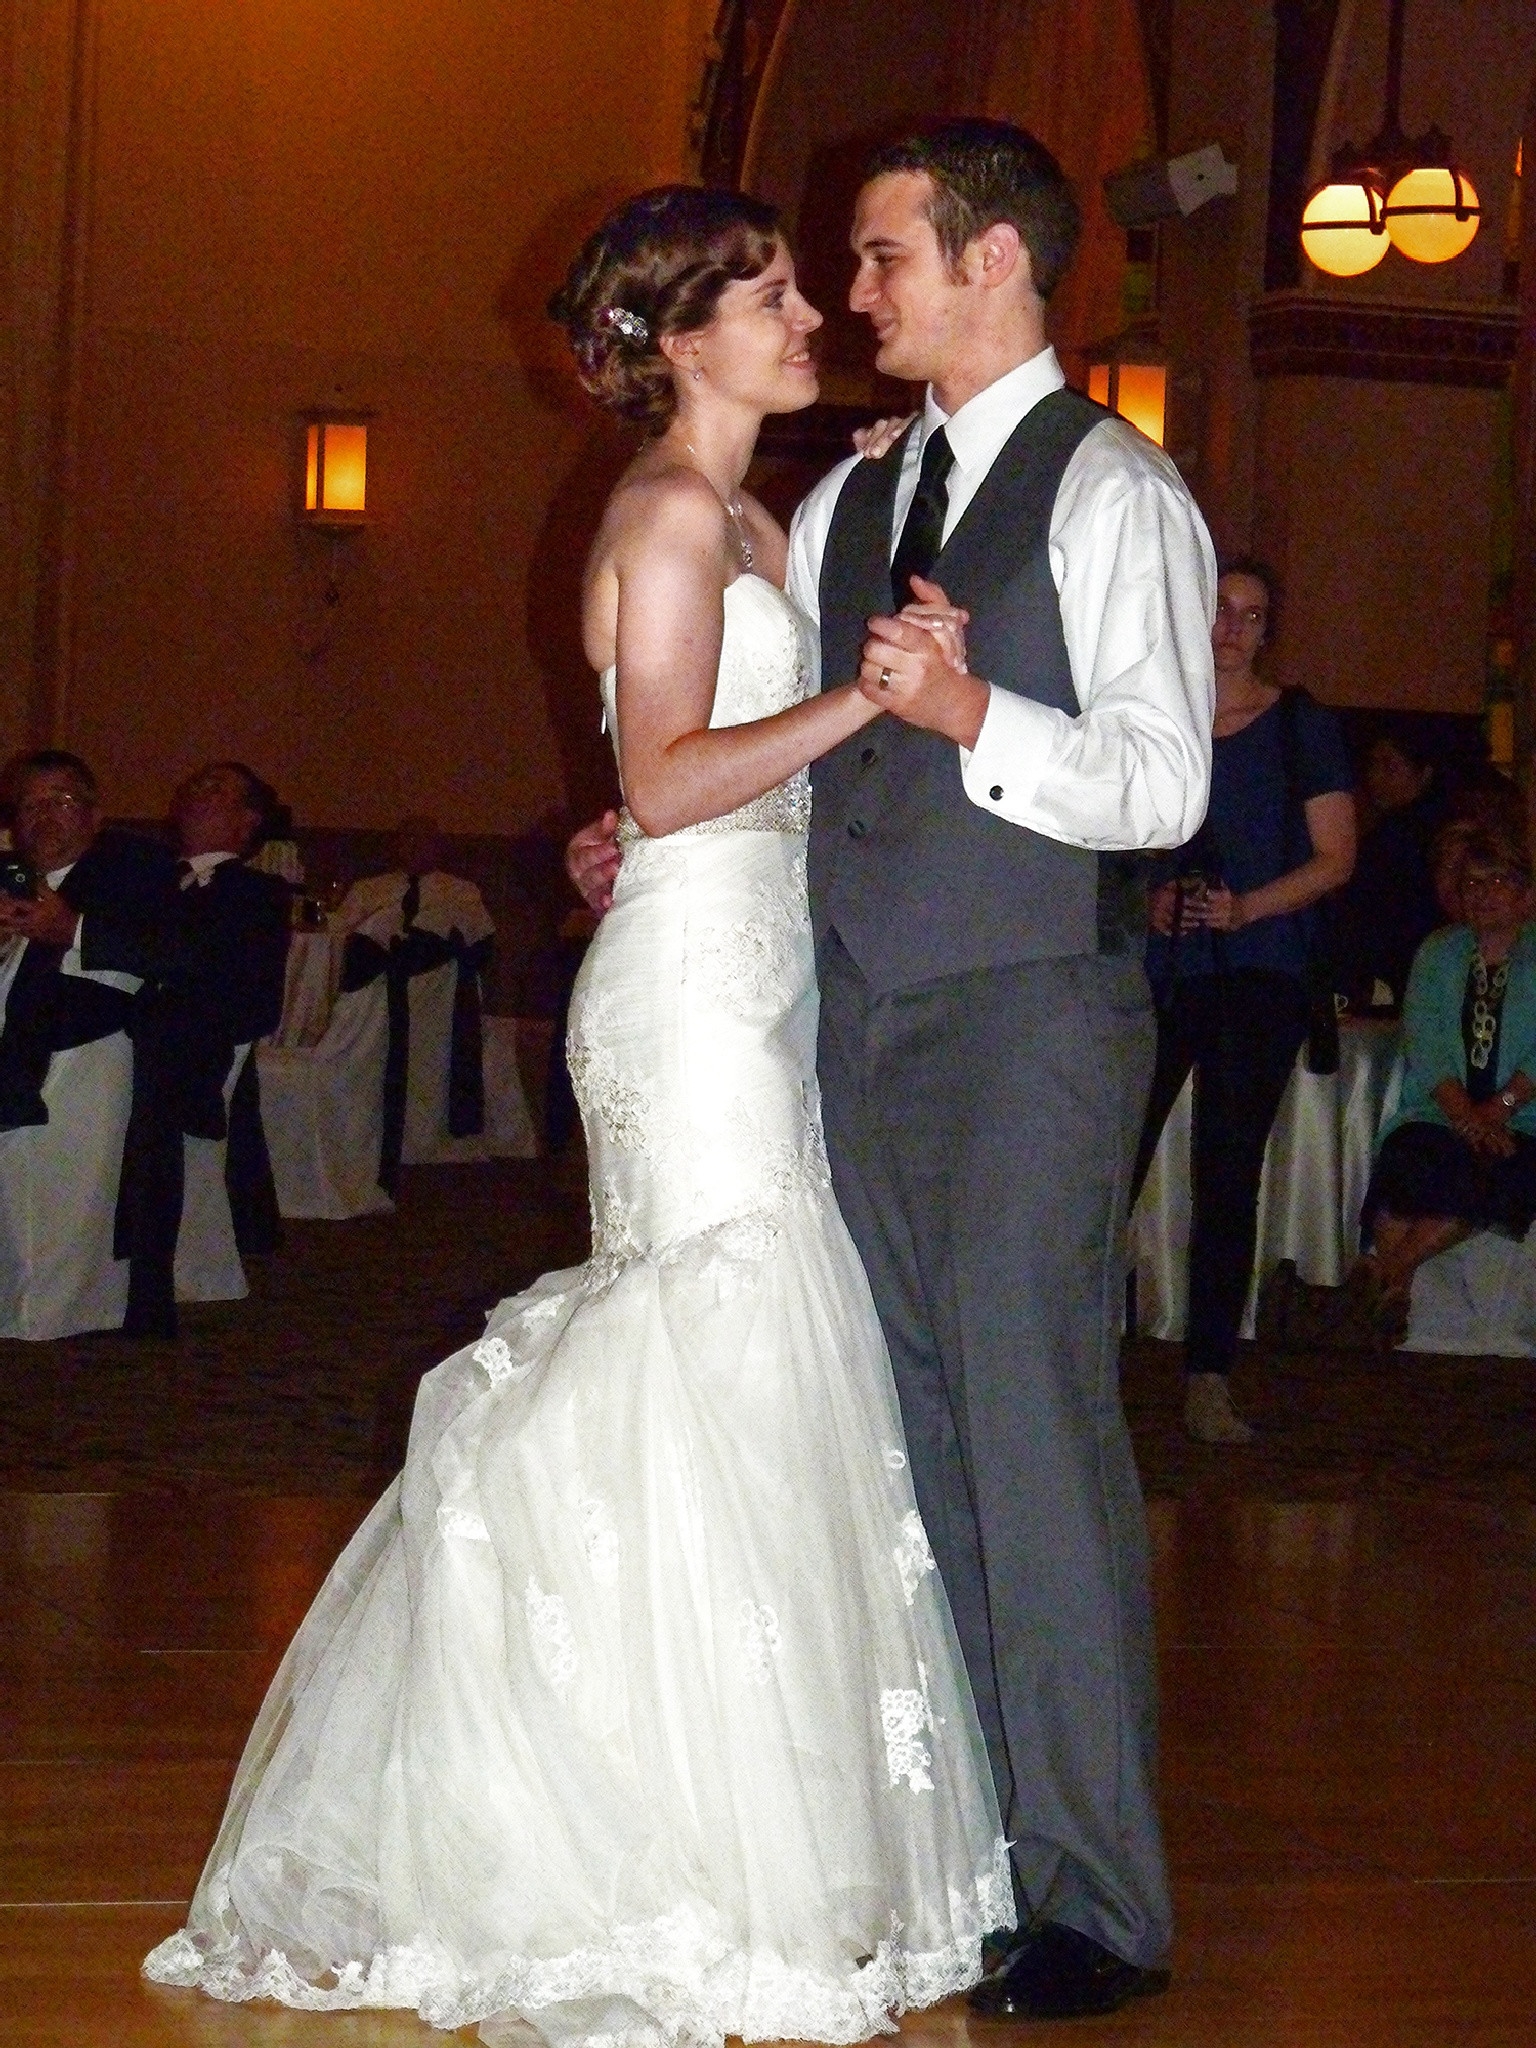 Dance of the Bride and Groom by jeanne.winstead